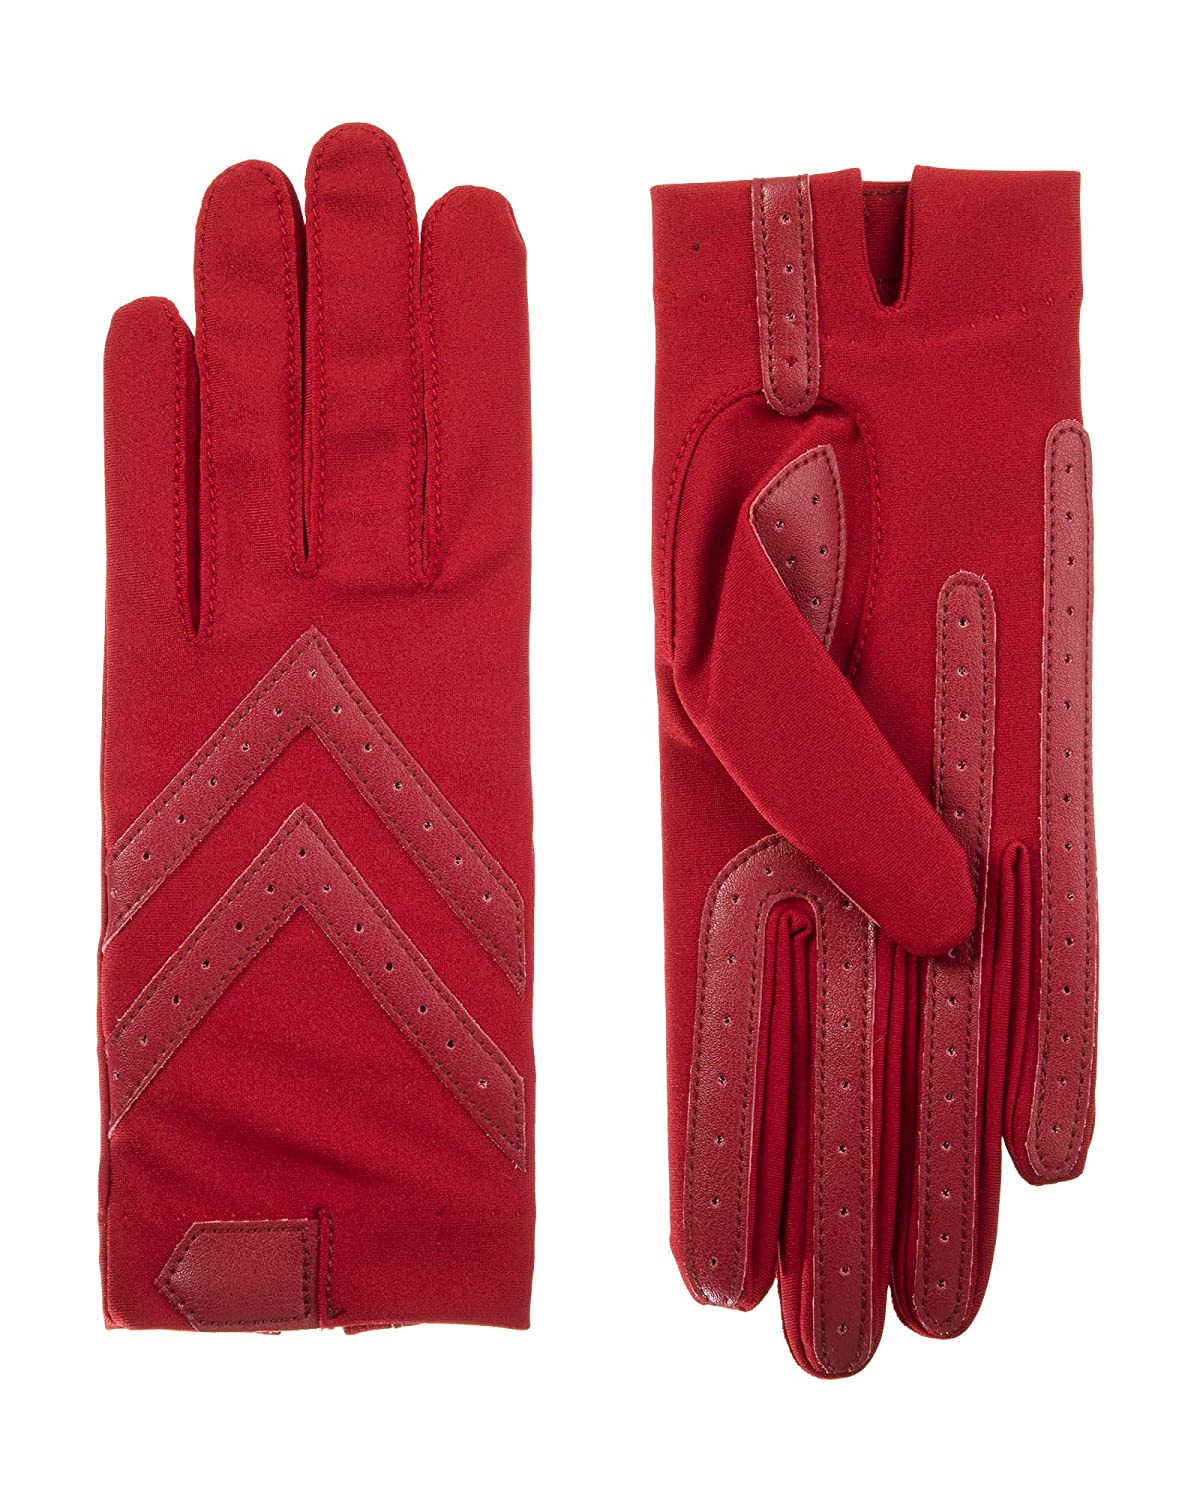 Isotoner Women's Spandex Shortie Gloves with Leather Palm Strips Totes Women's Accessories 56080